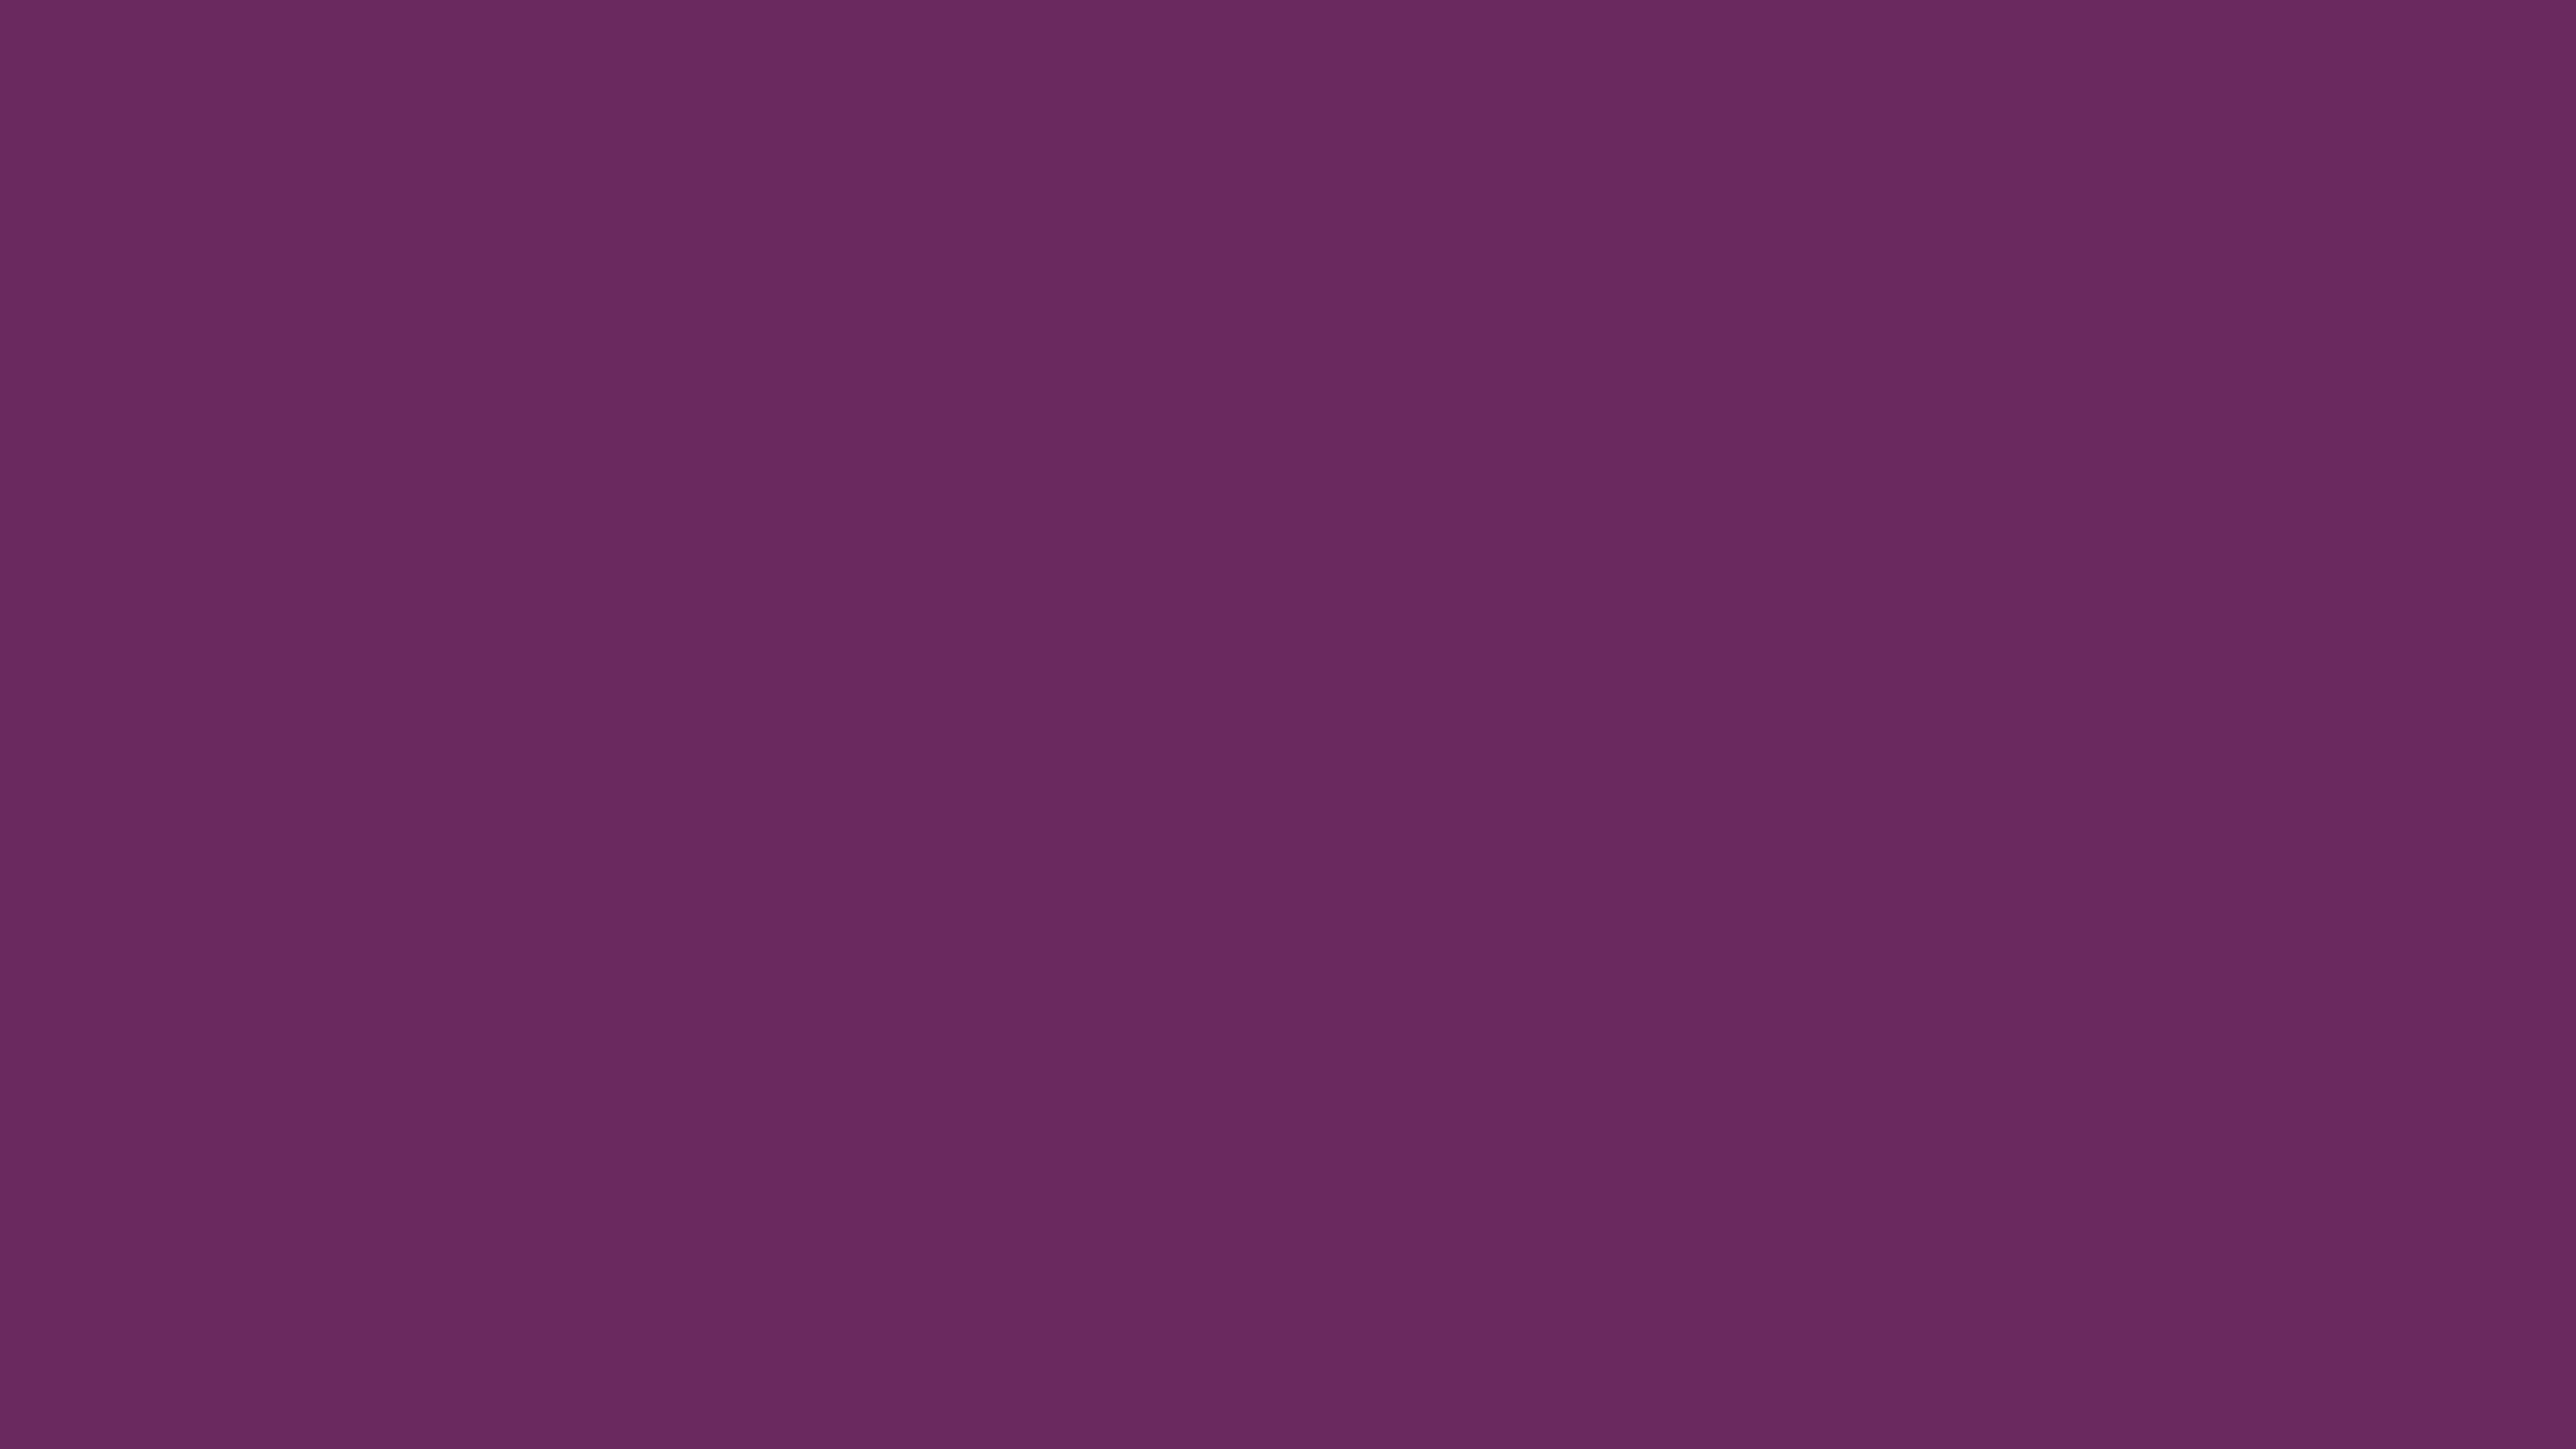 4096x2304 Palatinate Purple Solid Color Background